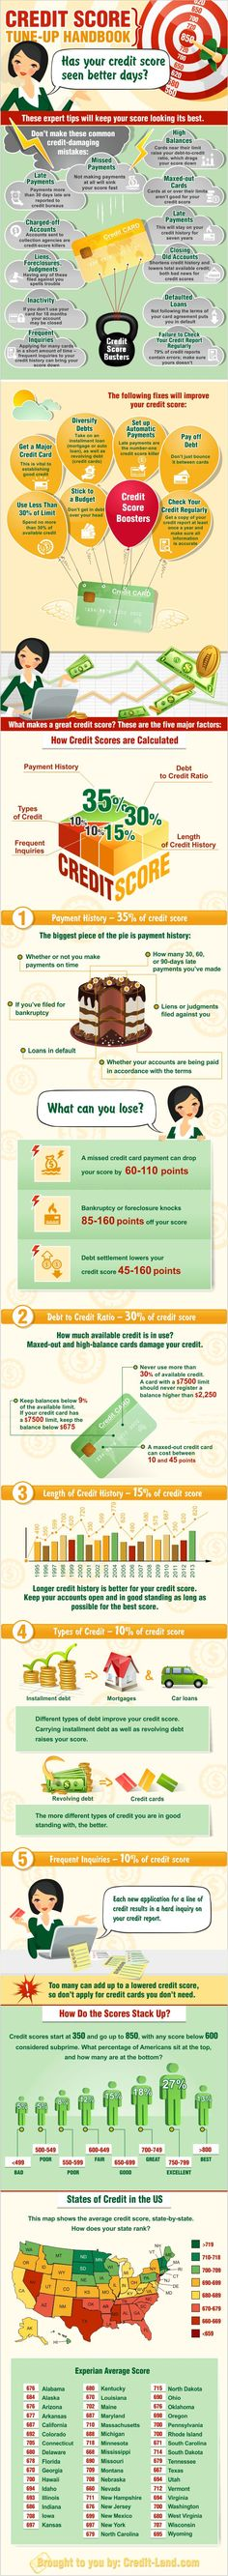 Mortgage Tips - Pay Your Mortgage Weekly Its official. The math does not lie you should pay your mortgage WEEKLY. I have just complete. Ways To Save Money, Money Saving Tips, Money Tips, Managing Money, Improve Credit Score, Mortgage Tips, Mortgage Rates, Mortgage Humor, Mortgage Payment